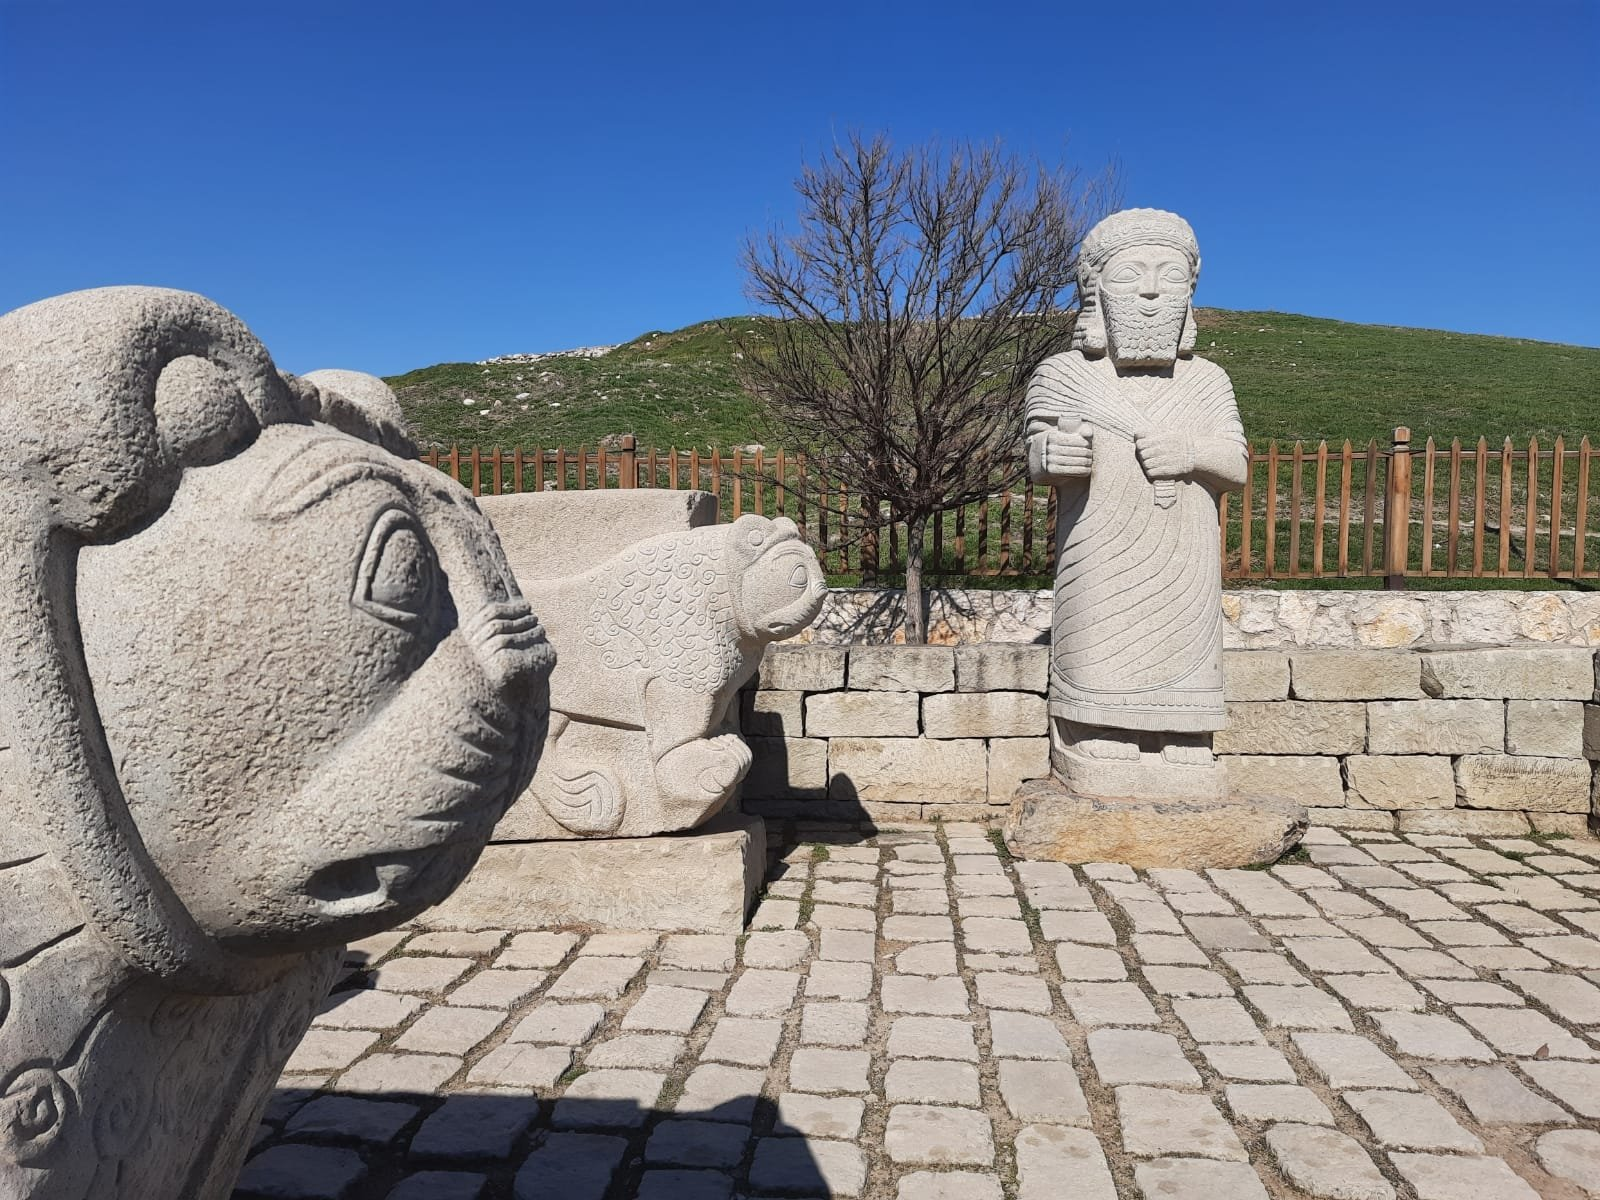 Two lion statues on both sides of the entrance gate and a statue of the Hittite king Tarhunza in the archaeological site of Arslantepe, Malatya, eastern Turkey. (Courtesy of Ministry of Culture and Tourism)